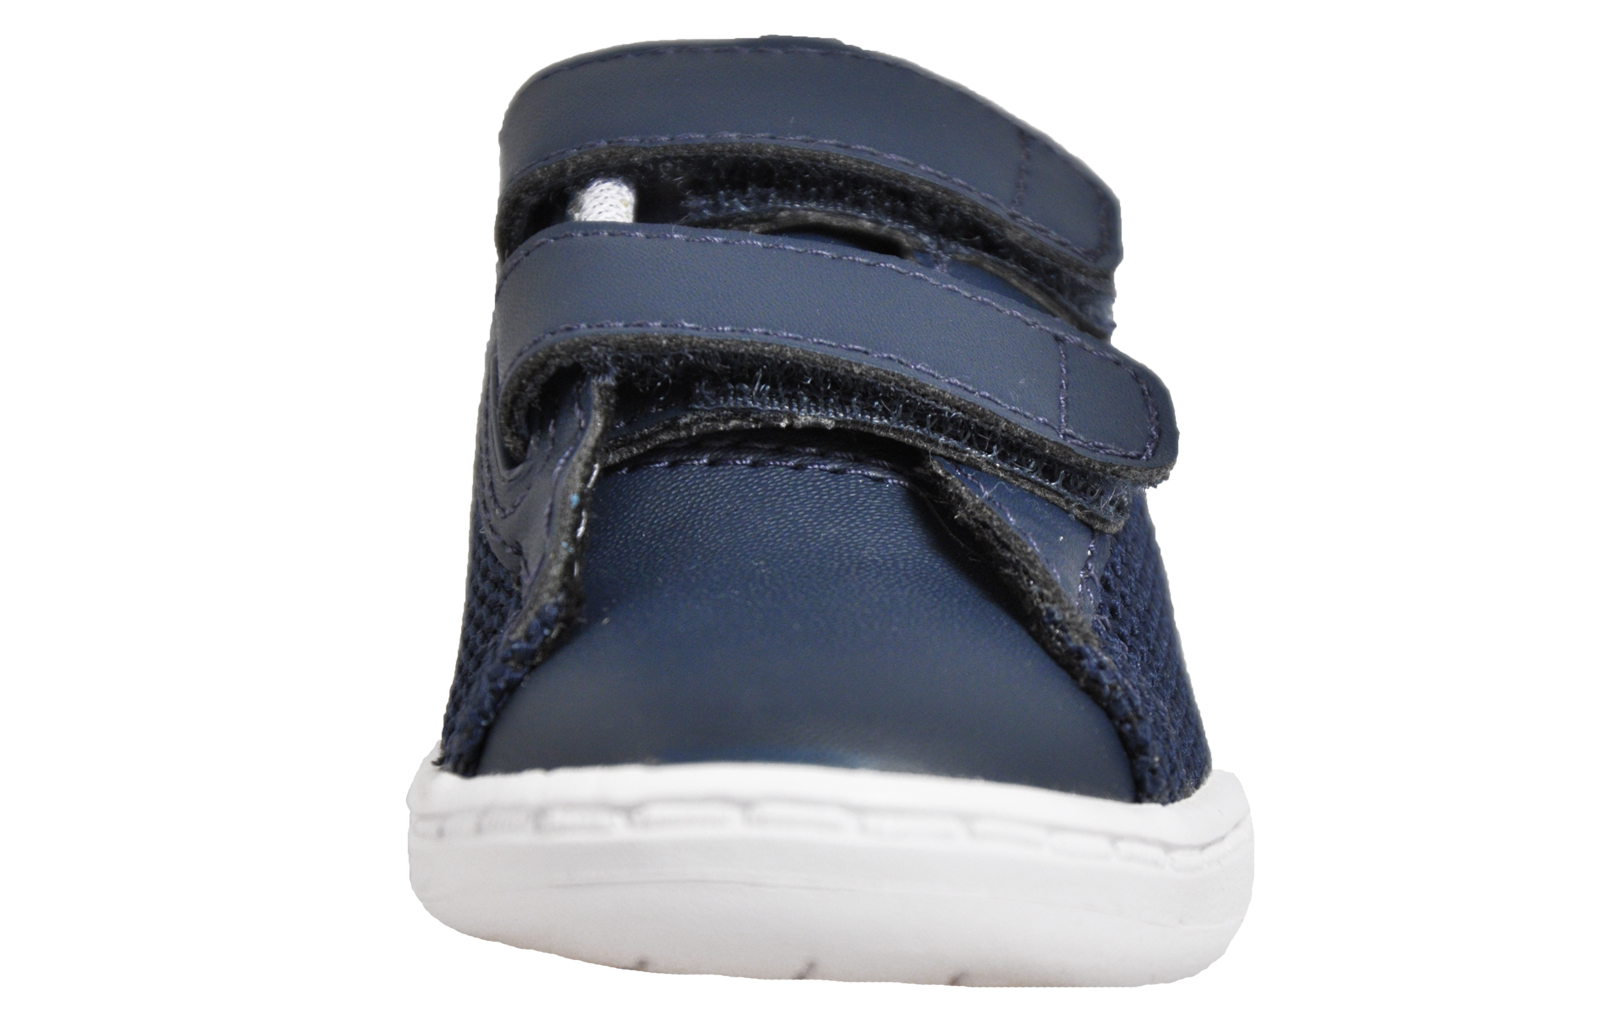 eeef7c7d8 Lacoste Carnaby Evo 117 Infants Toddlers Classic Retro Designer Trainers  Navy